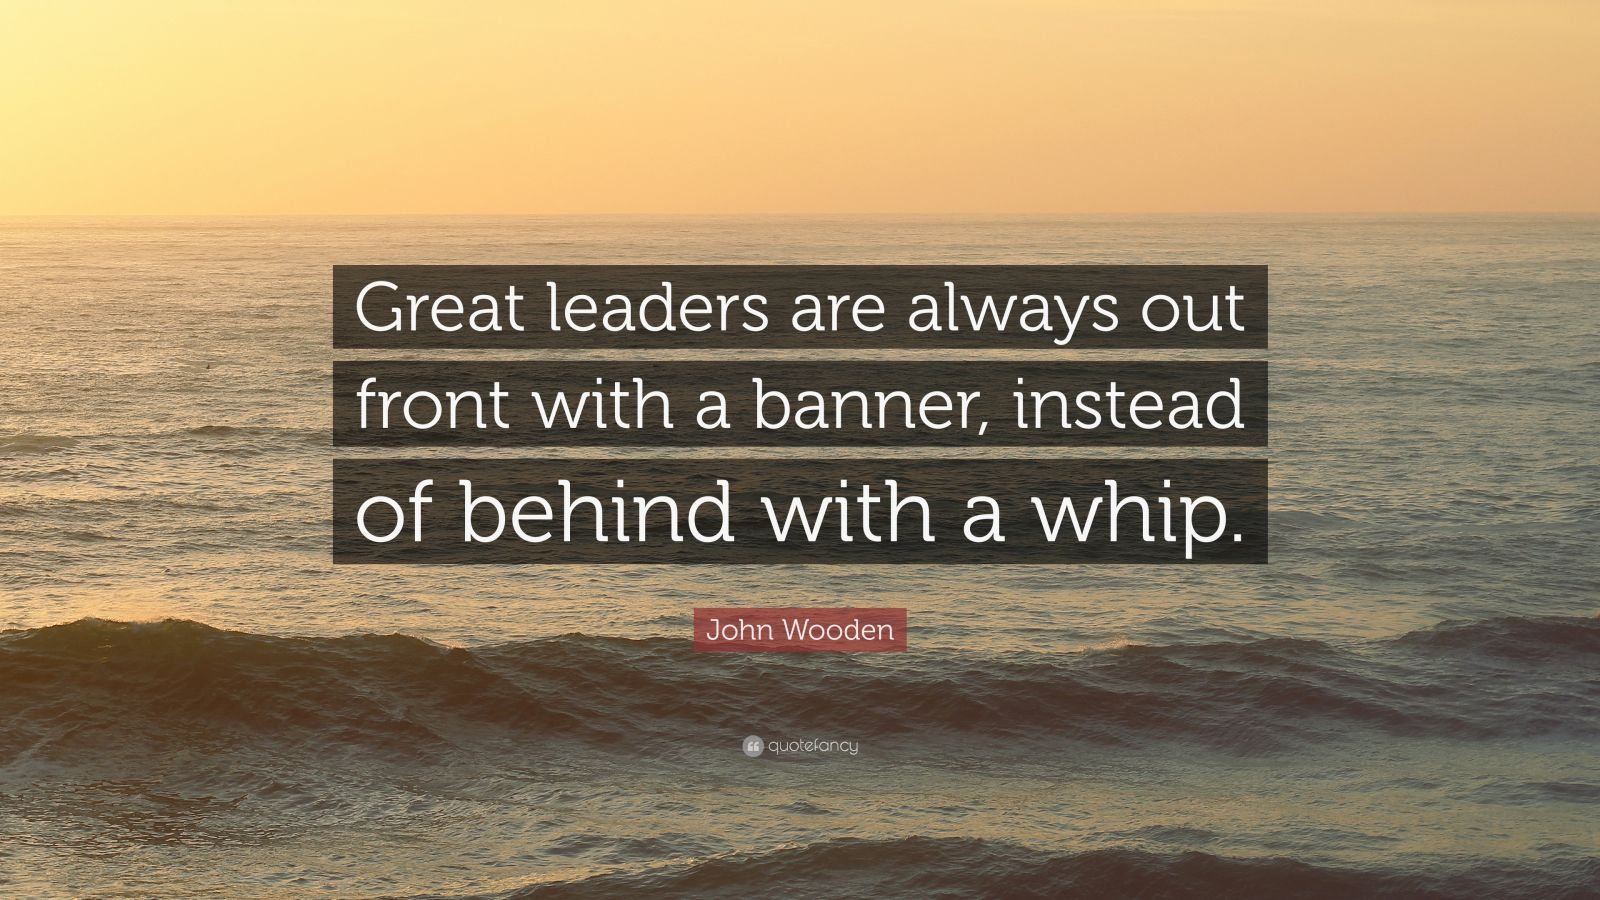 Reading Quotes Wallpaper John Wooden Quote Great Leaders Are Always Out Front